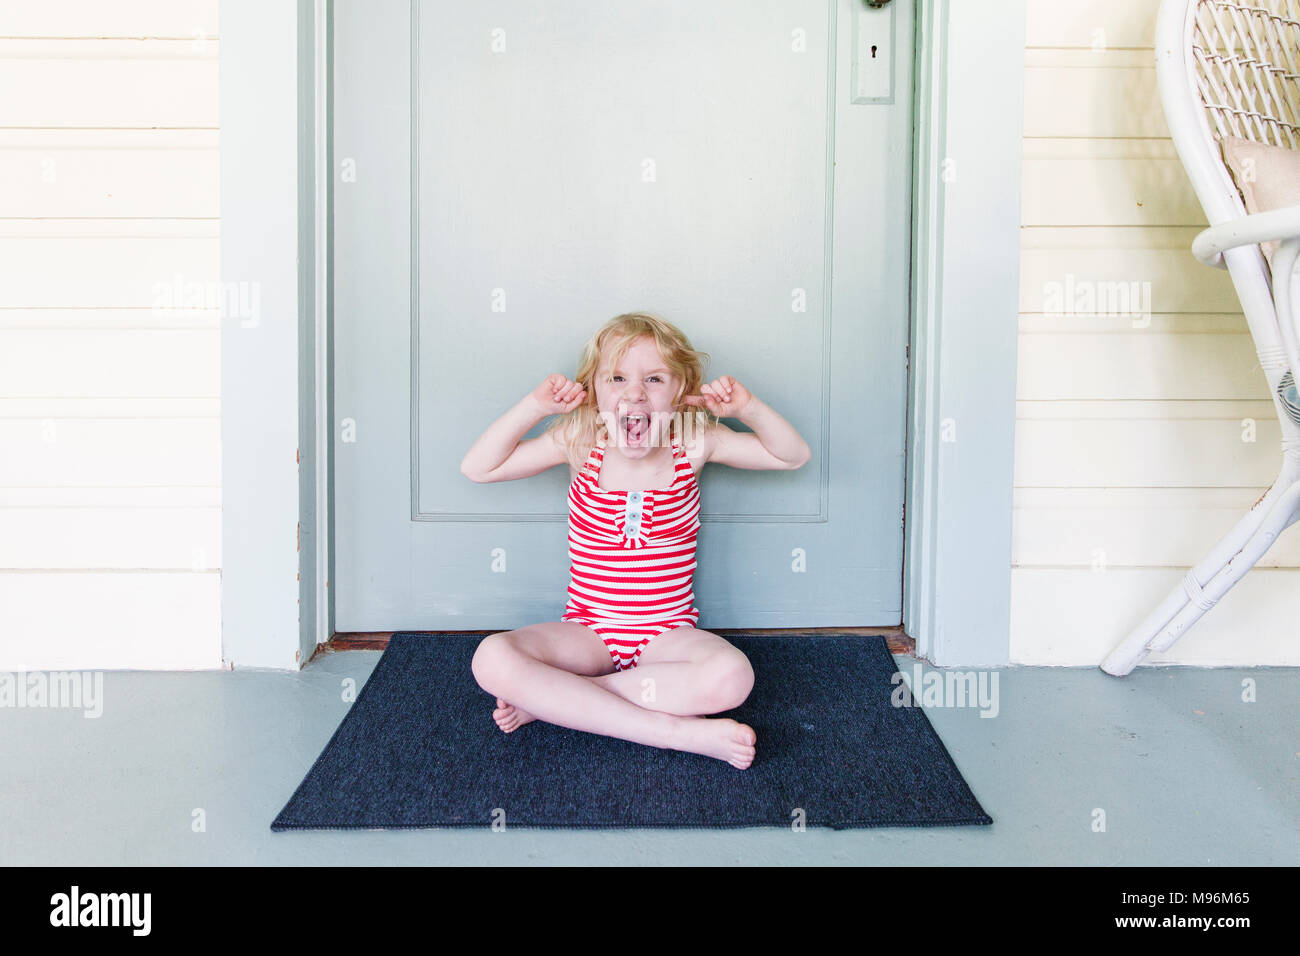 Girl pulling faces outside of door - Stock Image